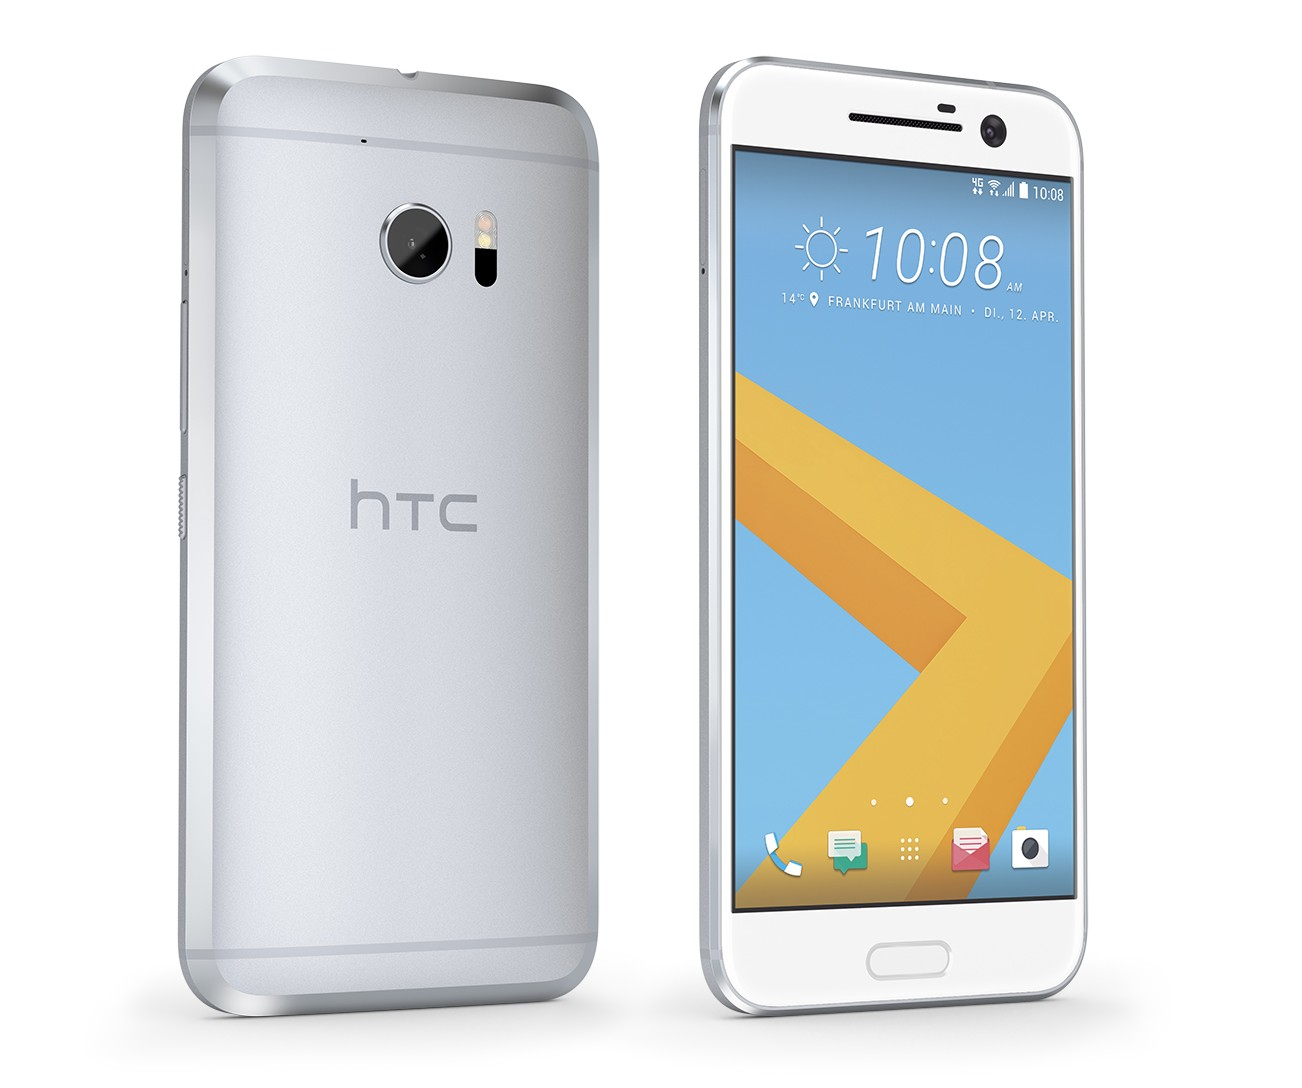 HTC 10 in Glacier Silver